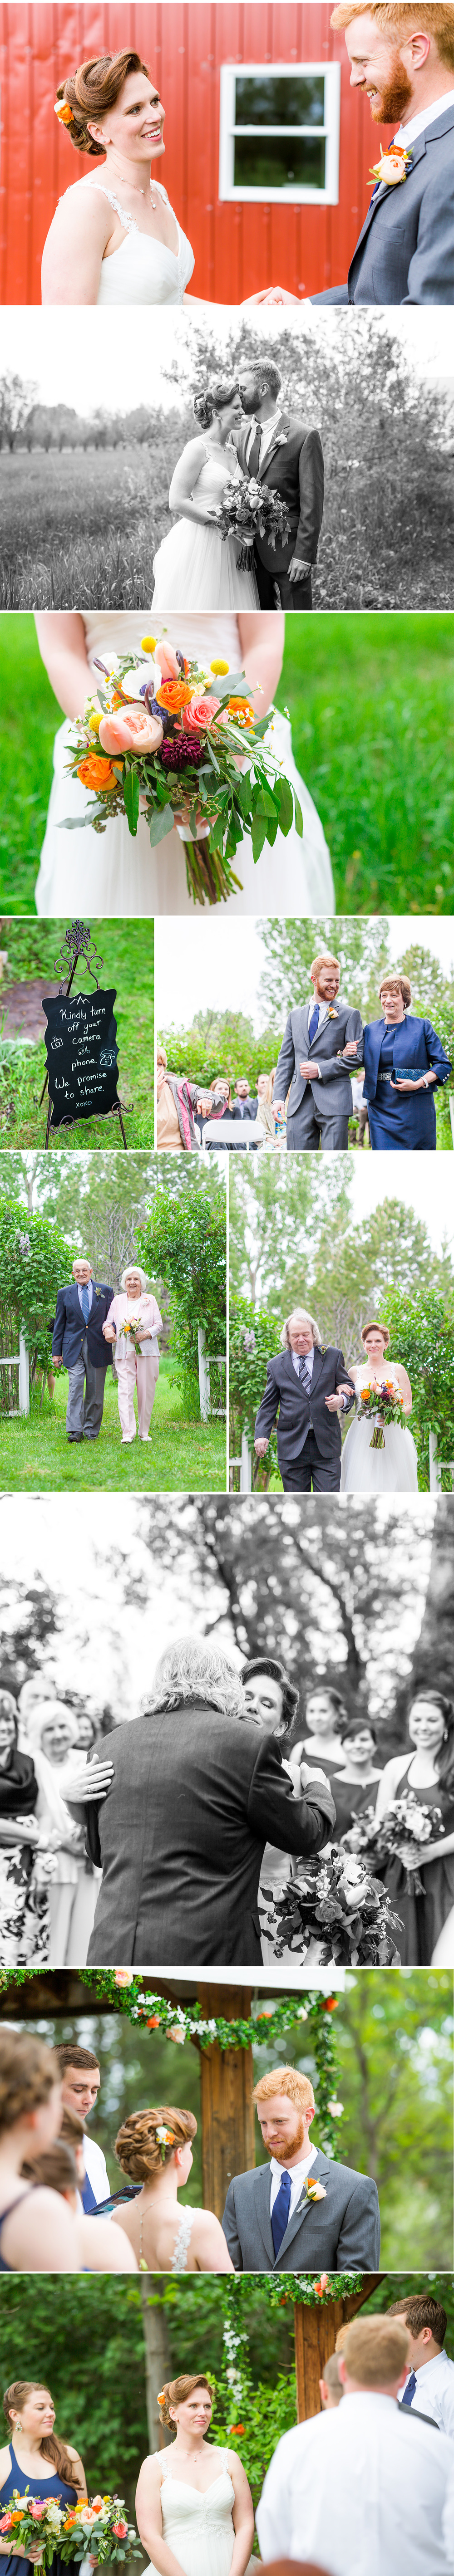 5 Lone Hawk Farm Wedding Ceremony.jpg